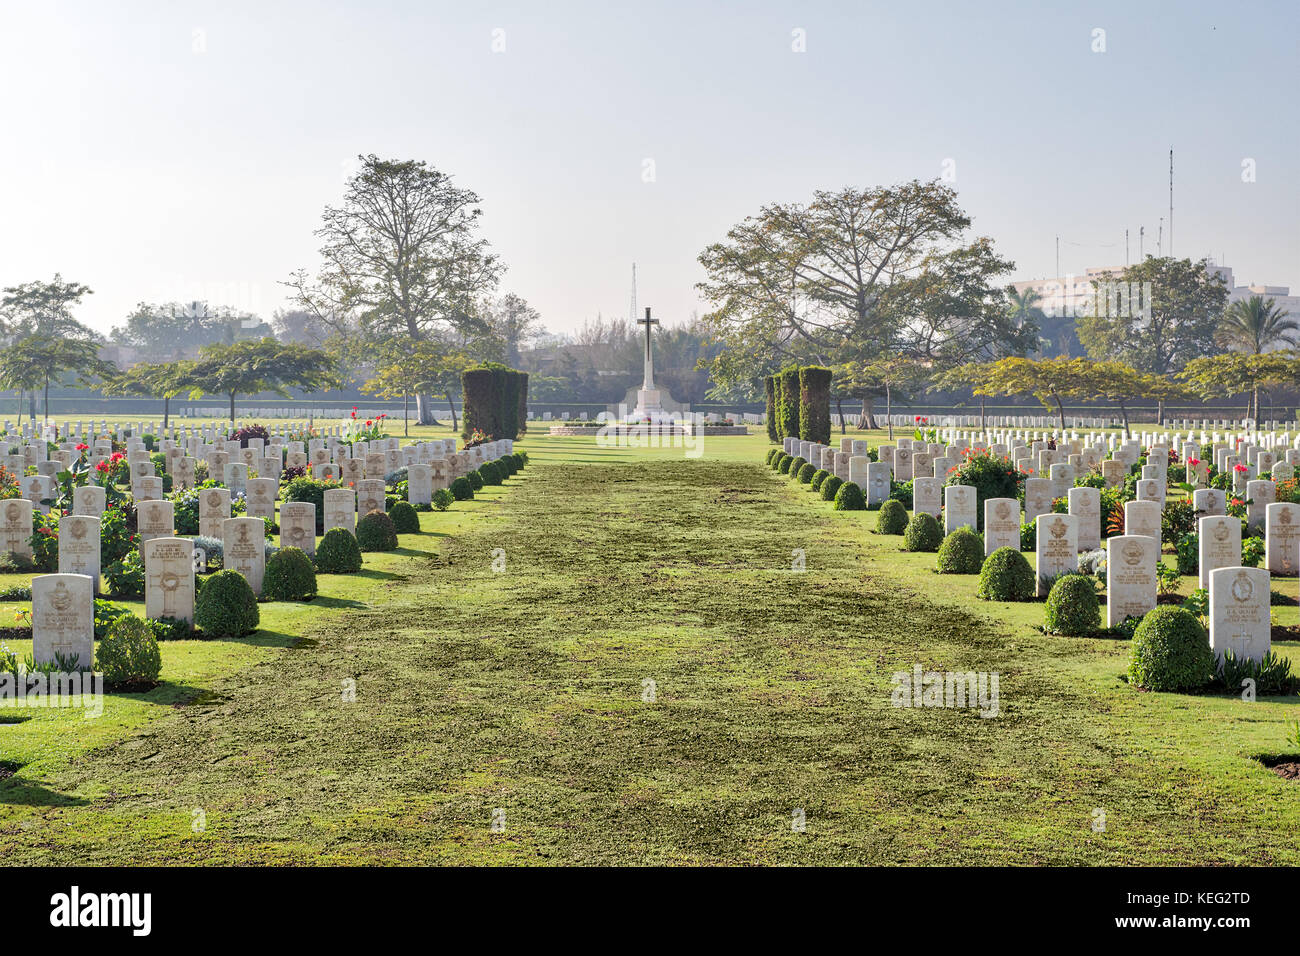 Heliopolis Commonwealth War Cemetery, contains 1742 burials of the Second World War, opened in October 1941 - Stock Image